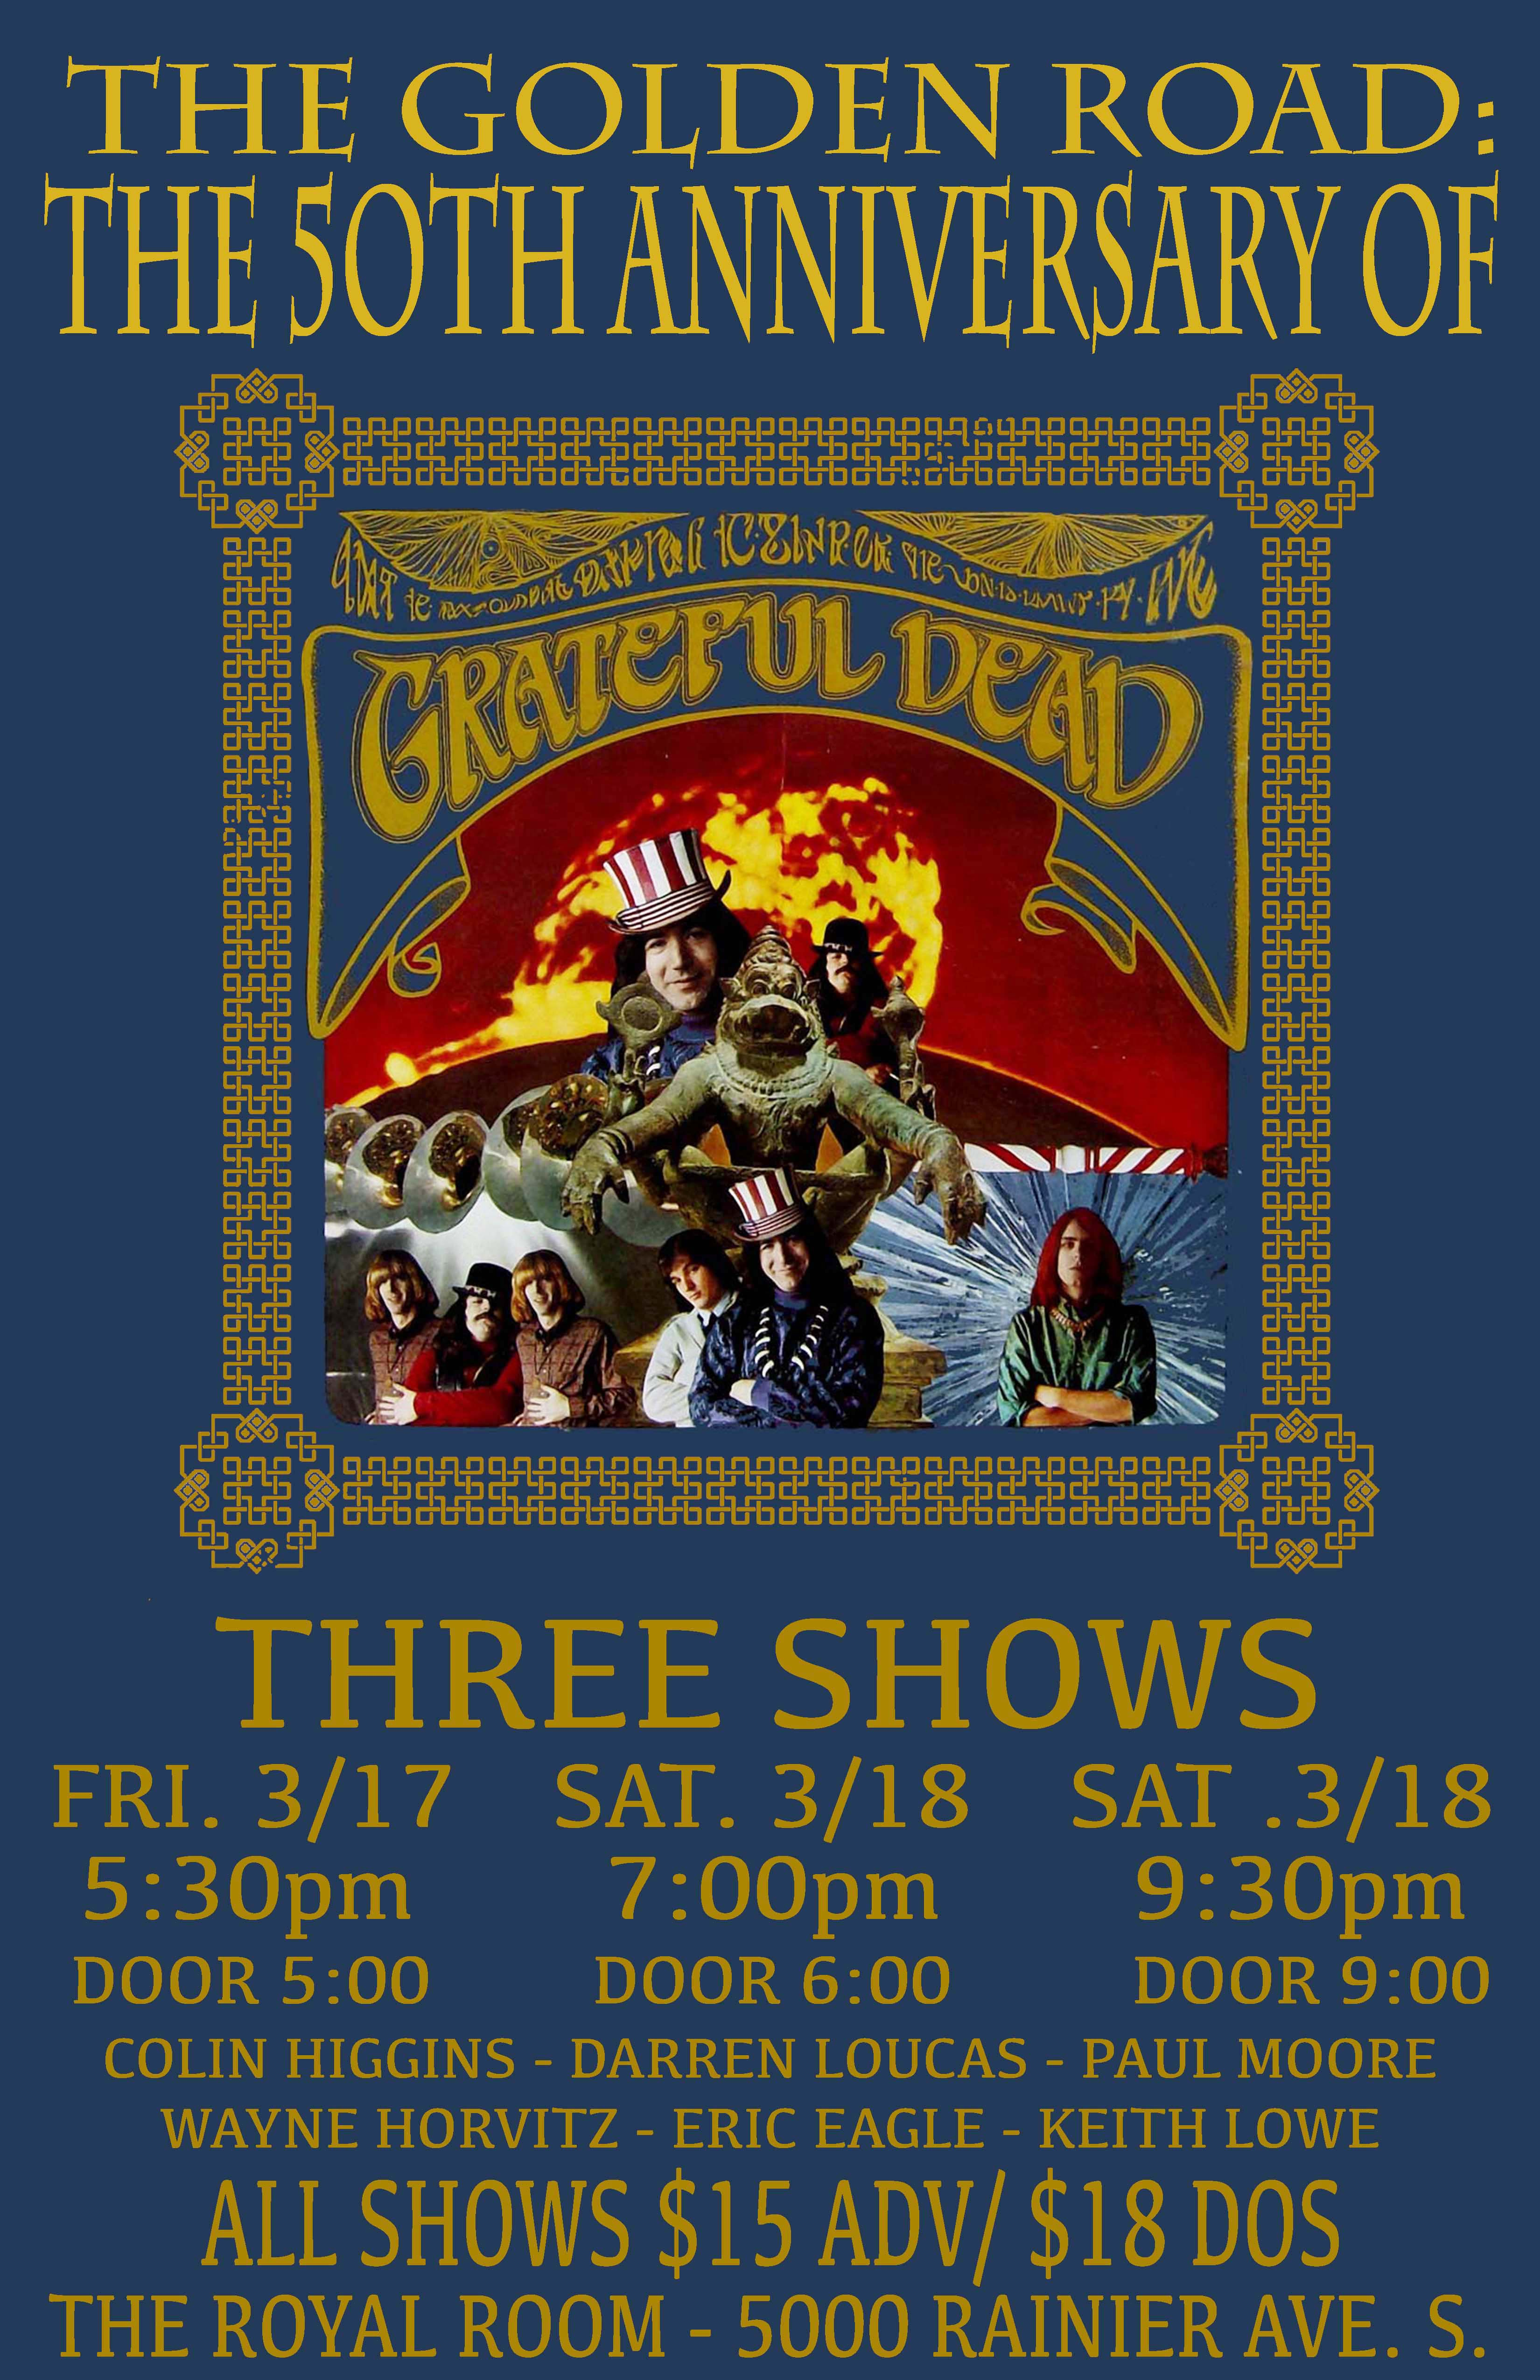 The Golden Road The 50th Anniversary Of The Grateful Dead